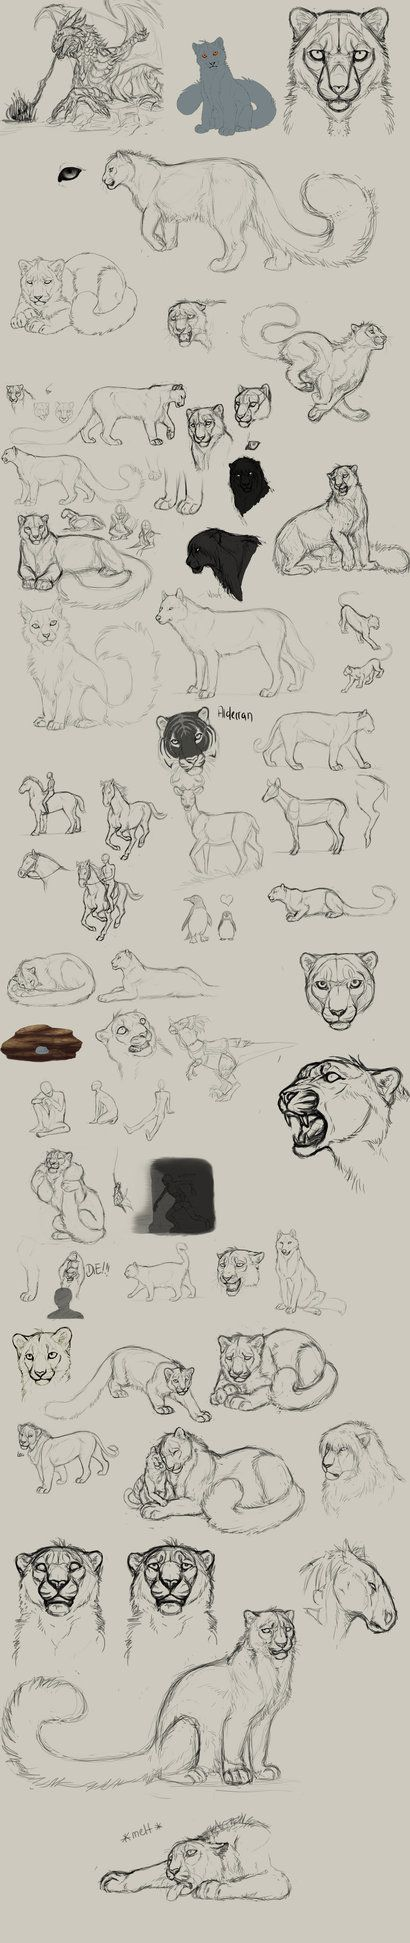 Best 50 Ideas Varias Images On Pinterest Animal Drawings Tattoo Bald Eagle Anatomy Diagram Http Catherinecabrolcom 9 Baldeagle Trying To Shake Off All The Rust Thats Come With My Long Non Drawing Phase Im Sometimes Still Struggeling Feline Especially Hind Legs H